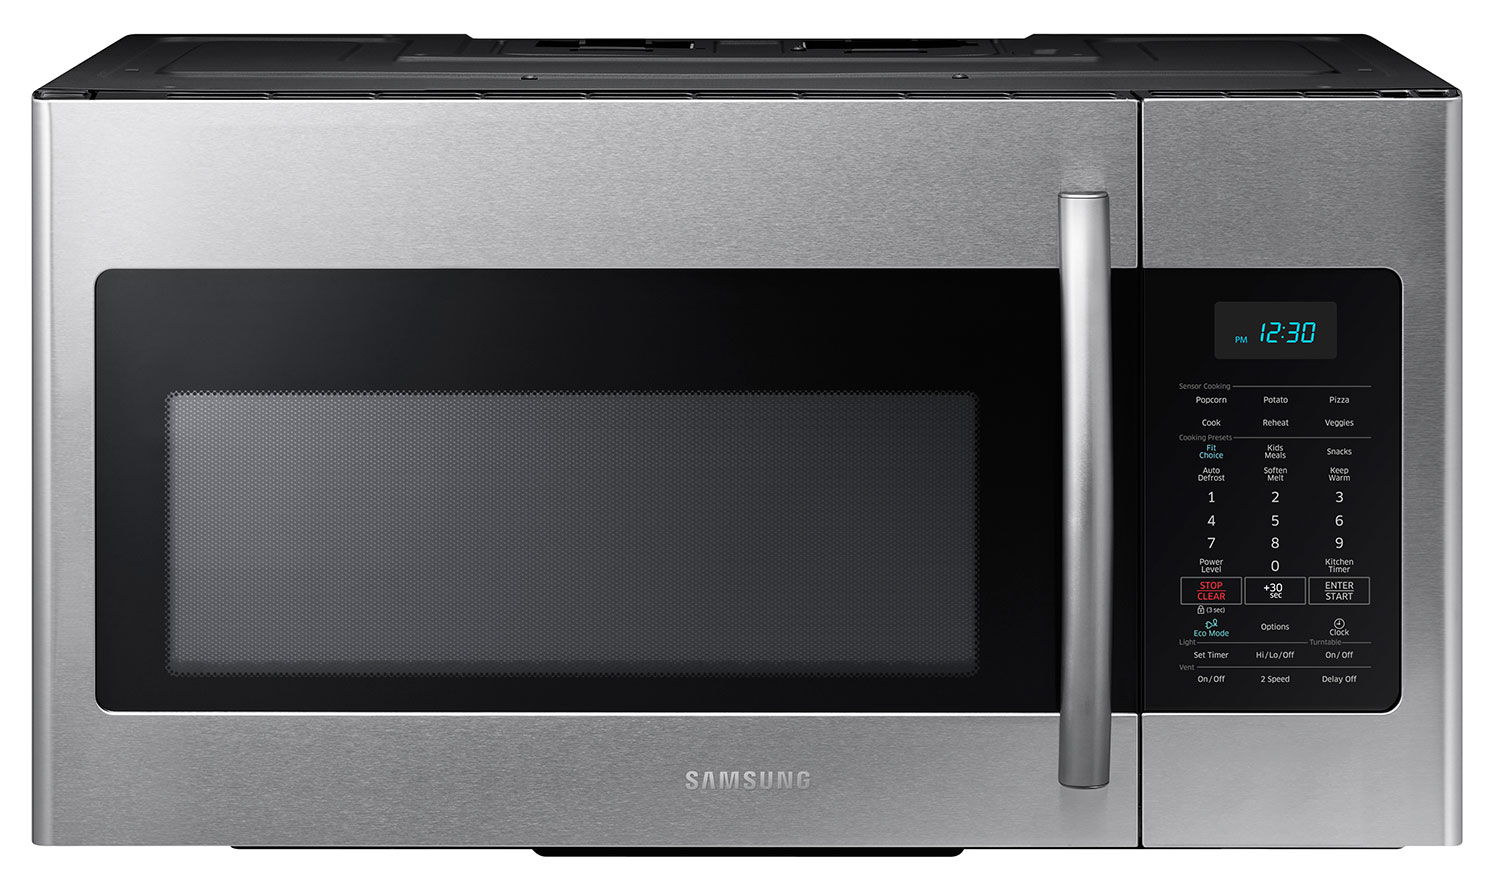 Cooking Products - Samsung 1.7 Cu. Ft. Over-the-Range Microwave – Stainless Steel